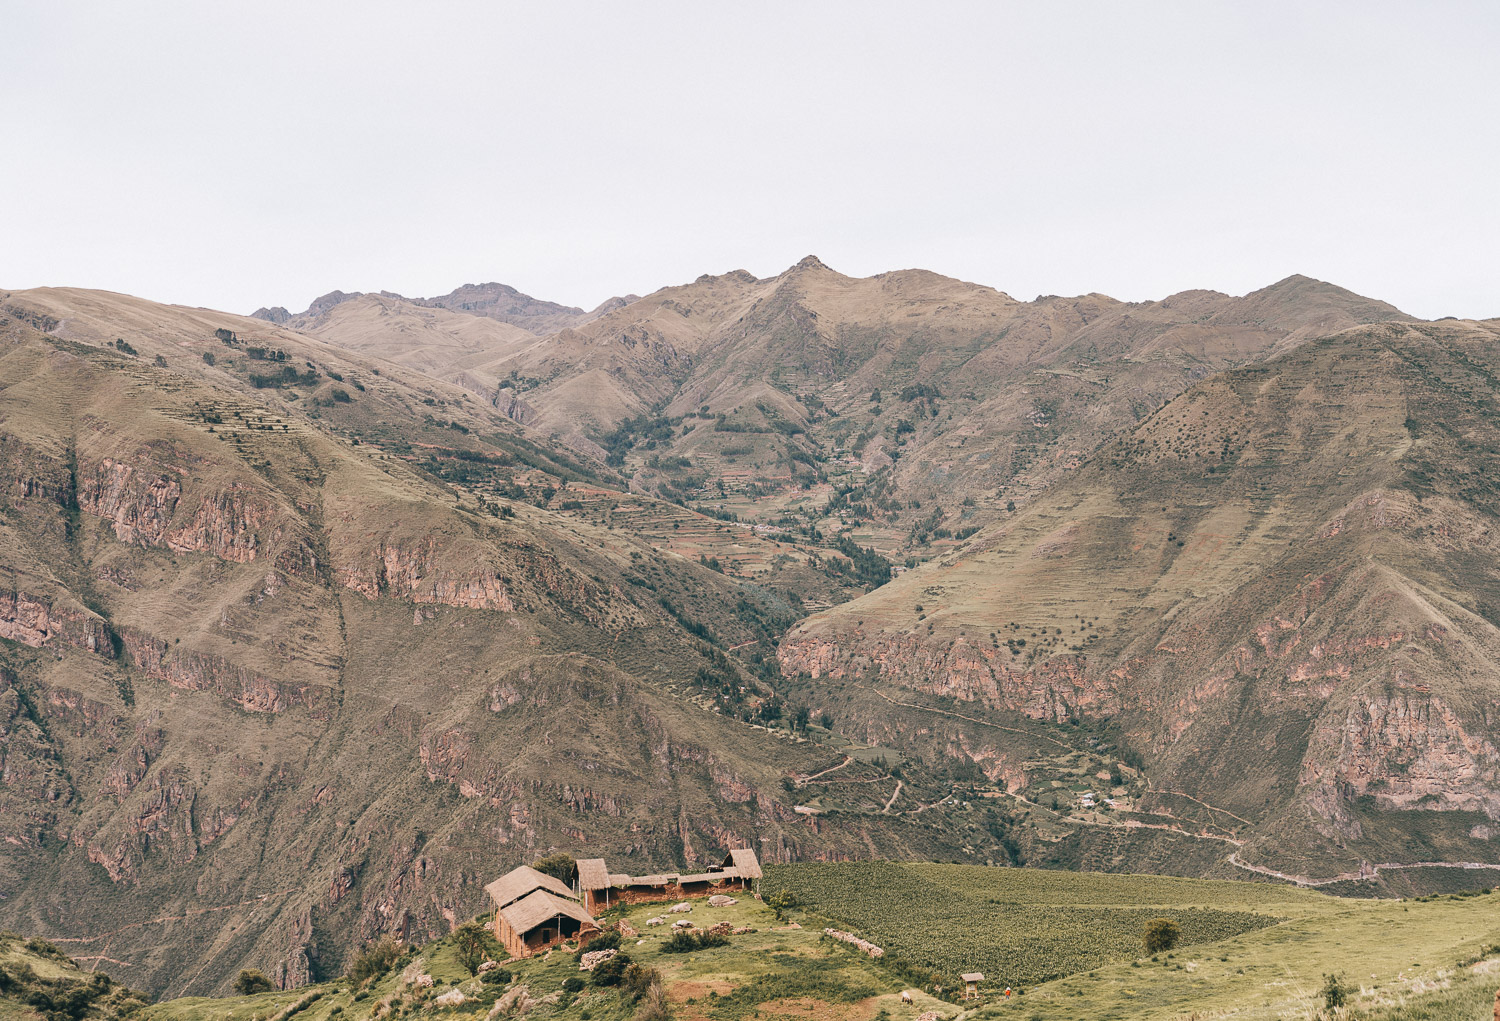 Huchuy Cosqo - Best Day Trips from Cusco